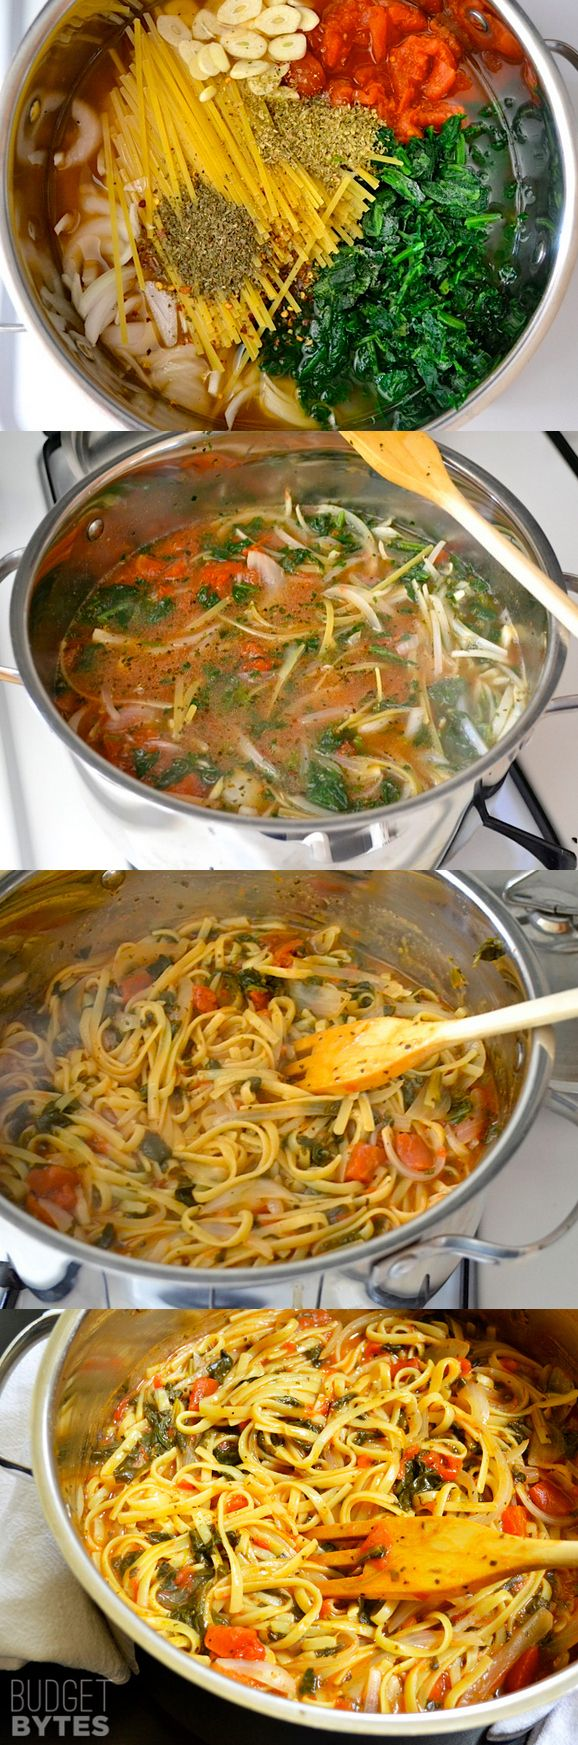 Italian Wonderpot - 7 Quick Dinners To Make This Week